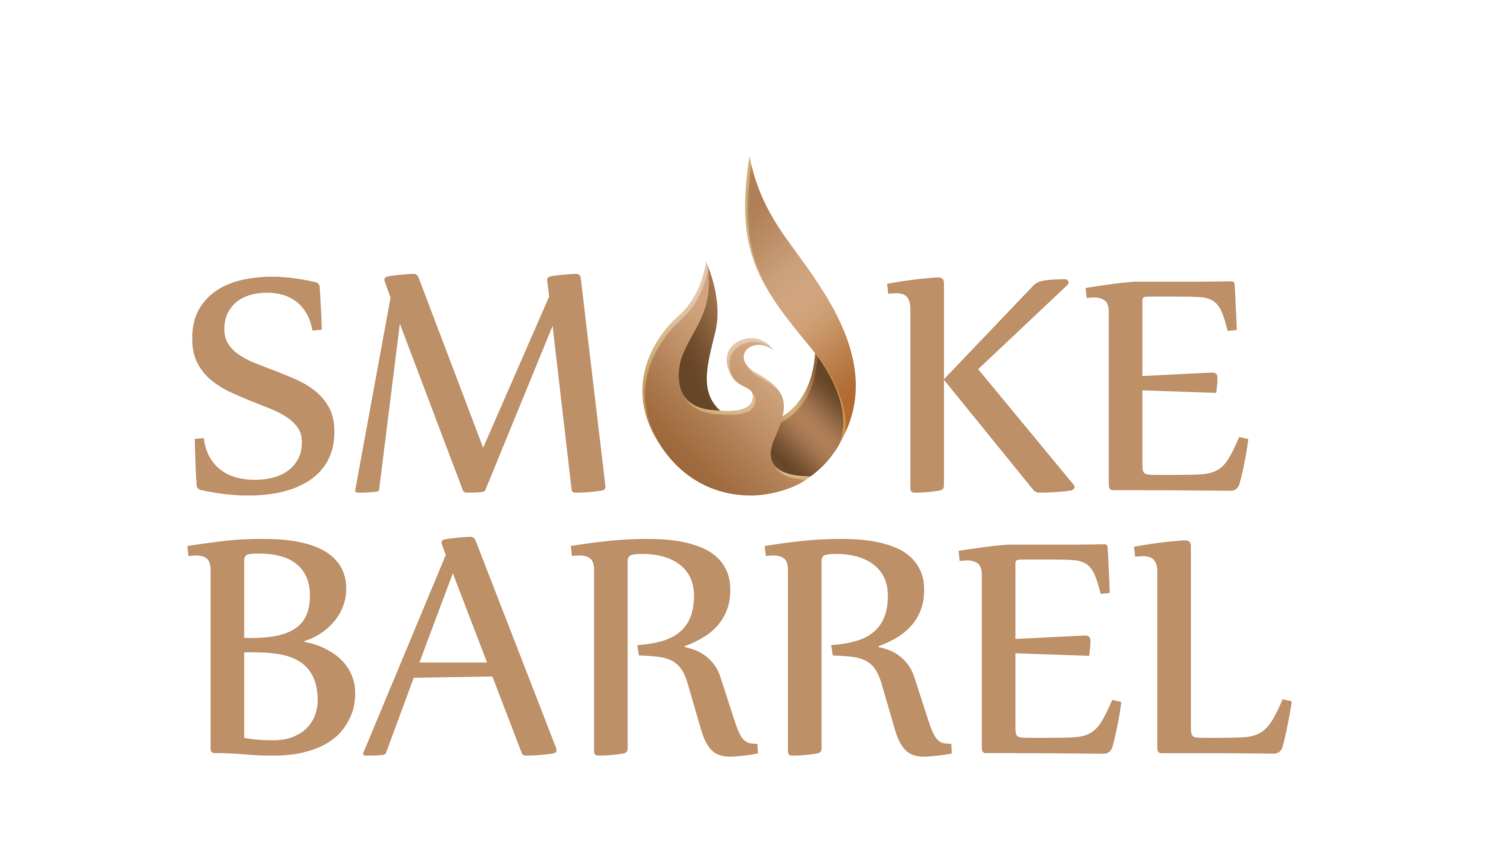 Smoke Barrel